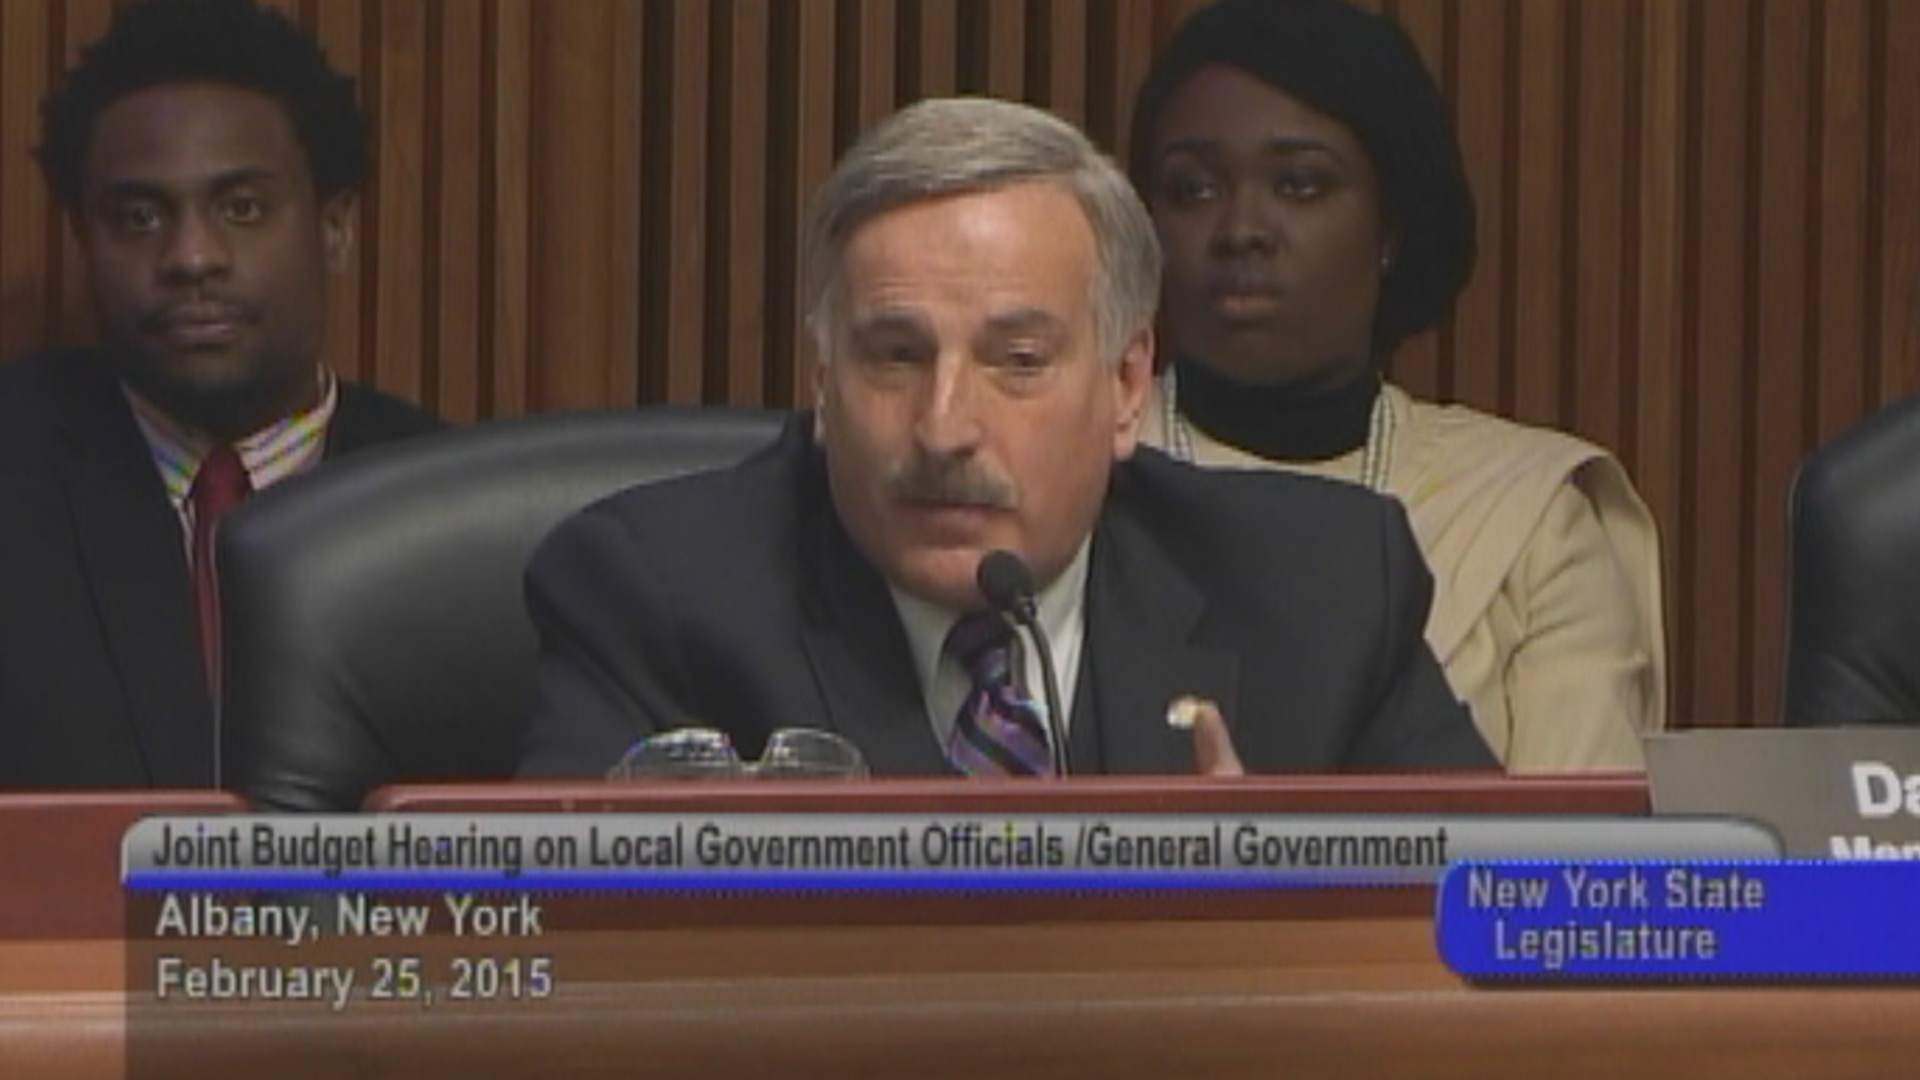 Local Government Officials/General Government Budget Hearing